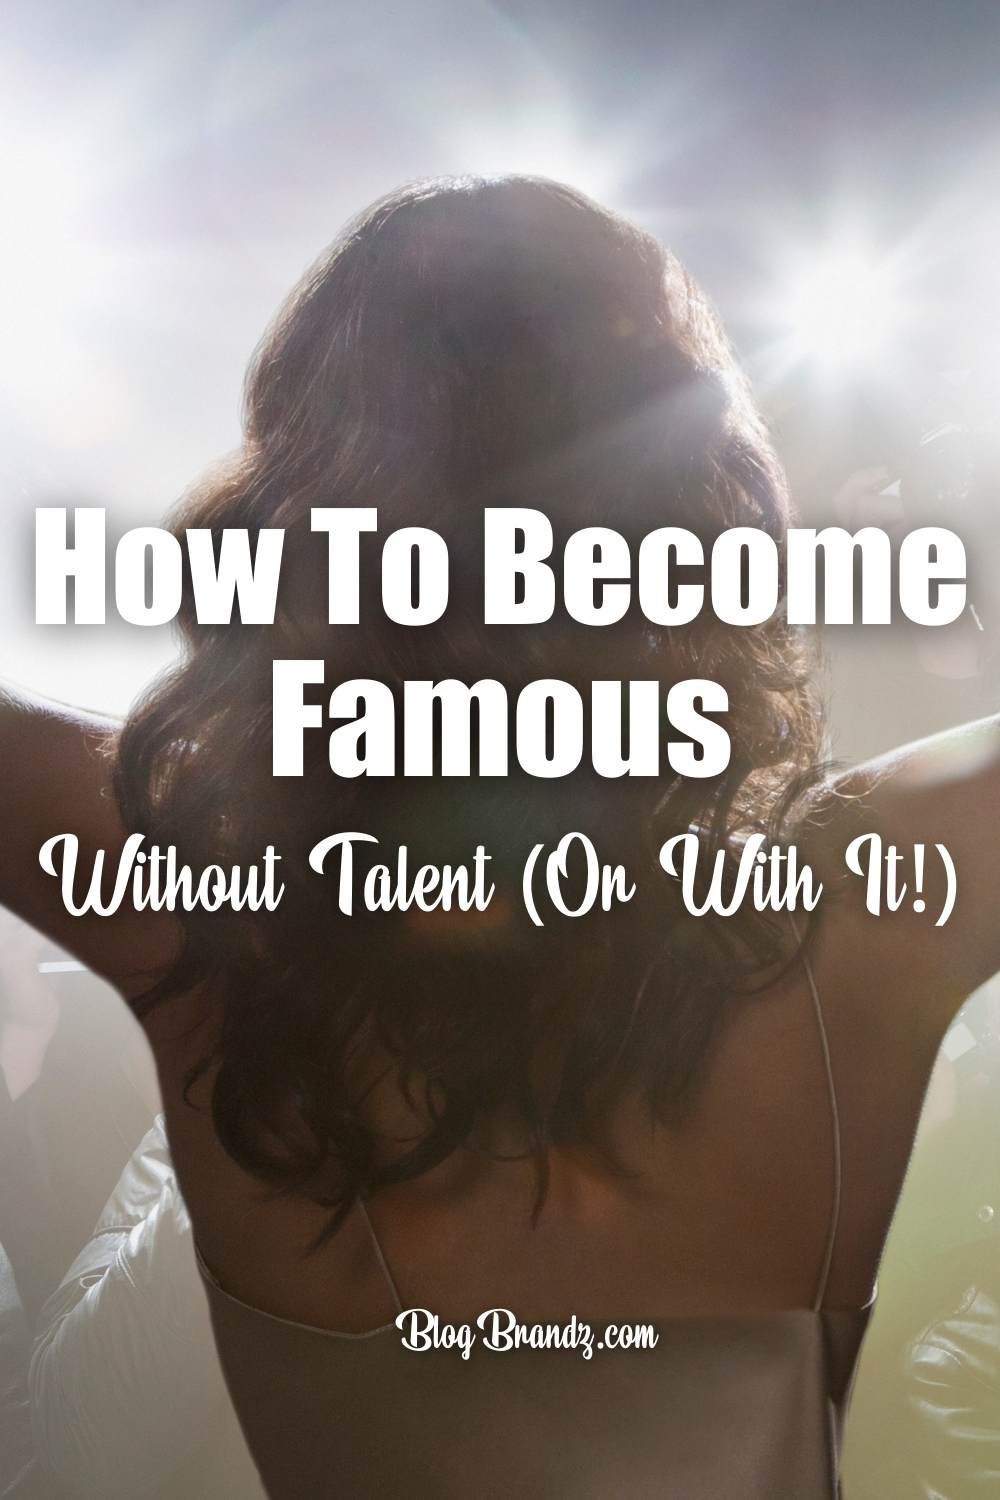 How To Become Famous Tips